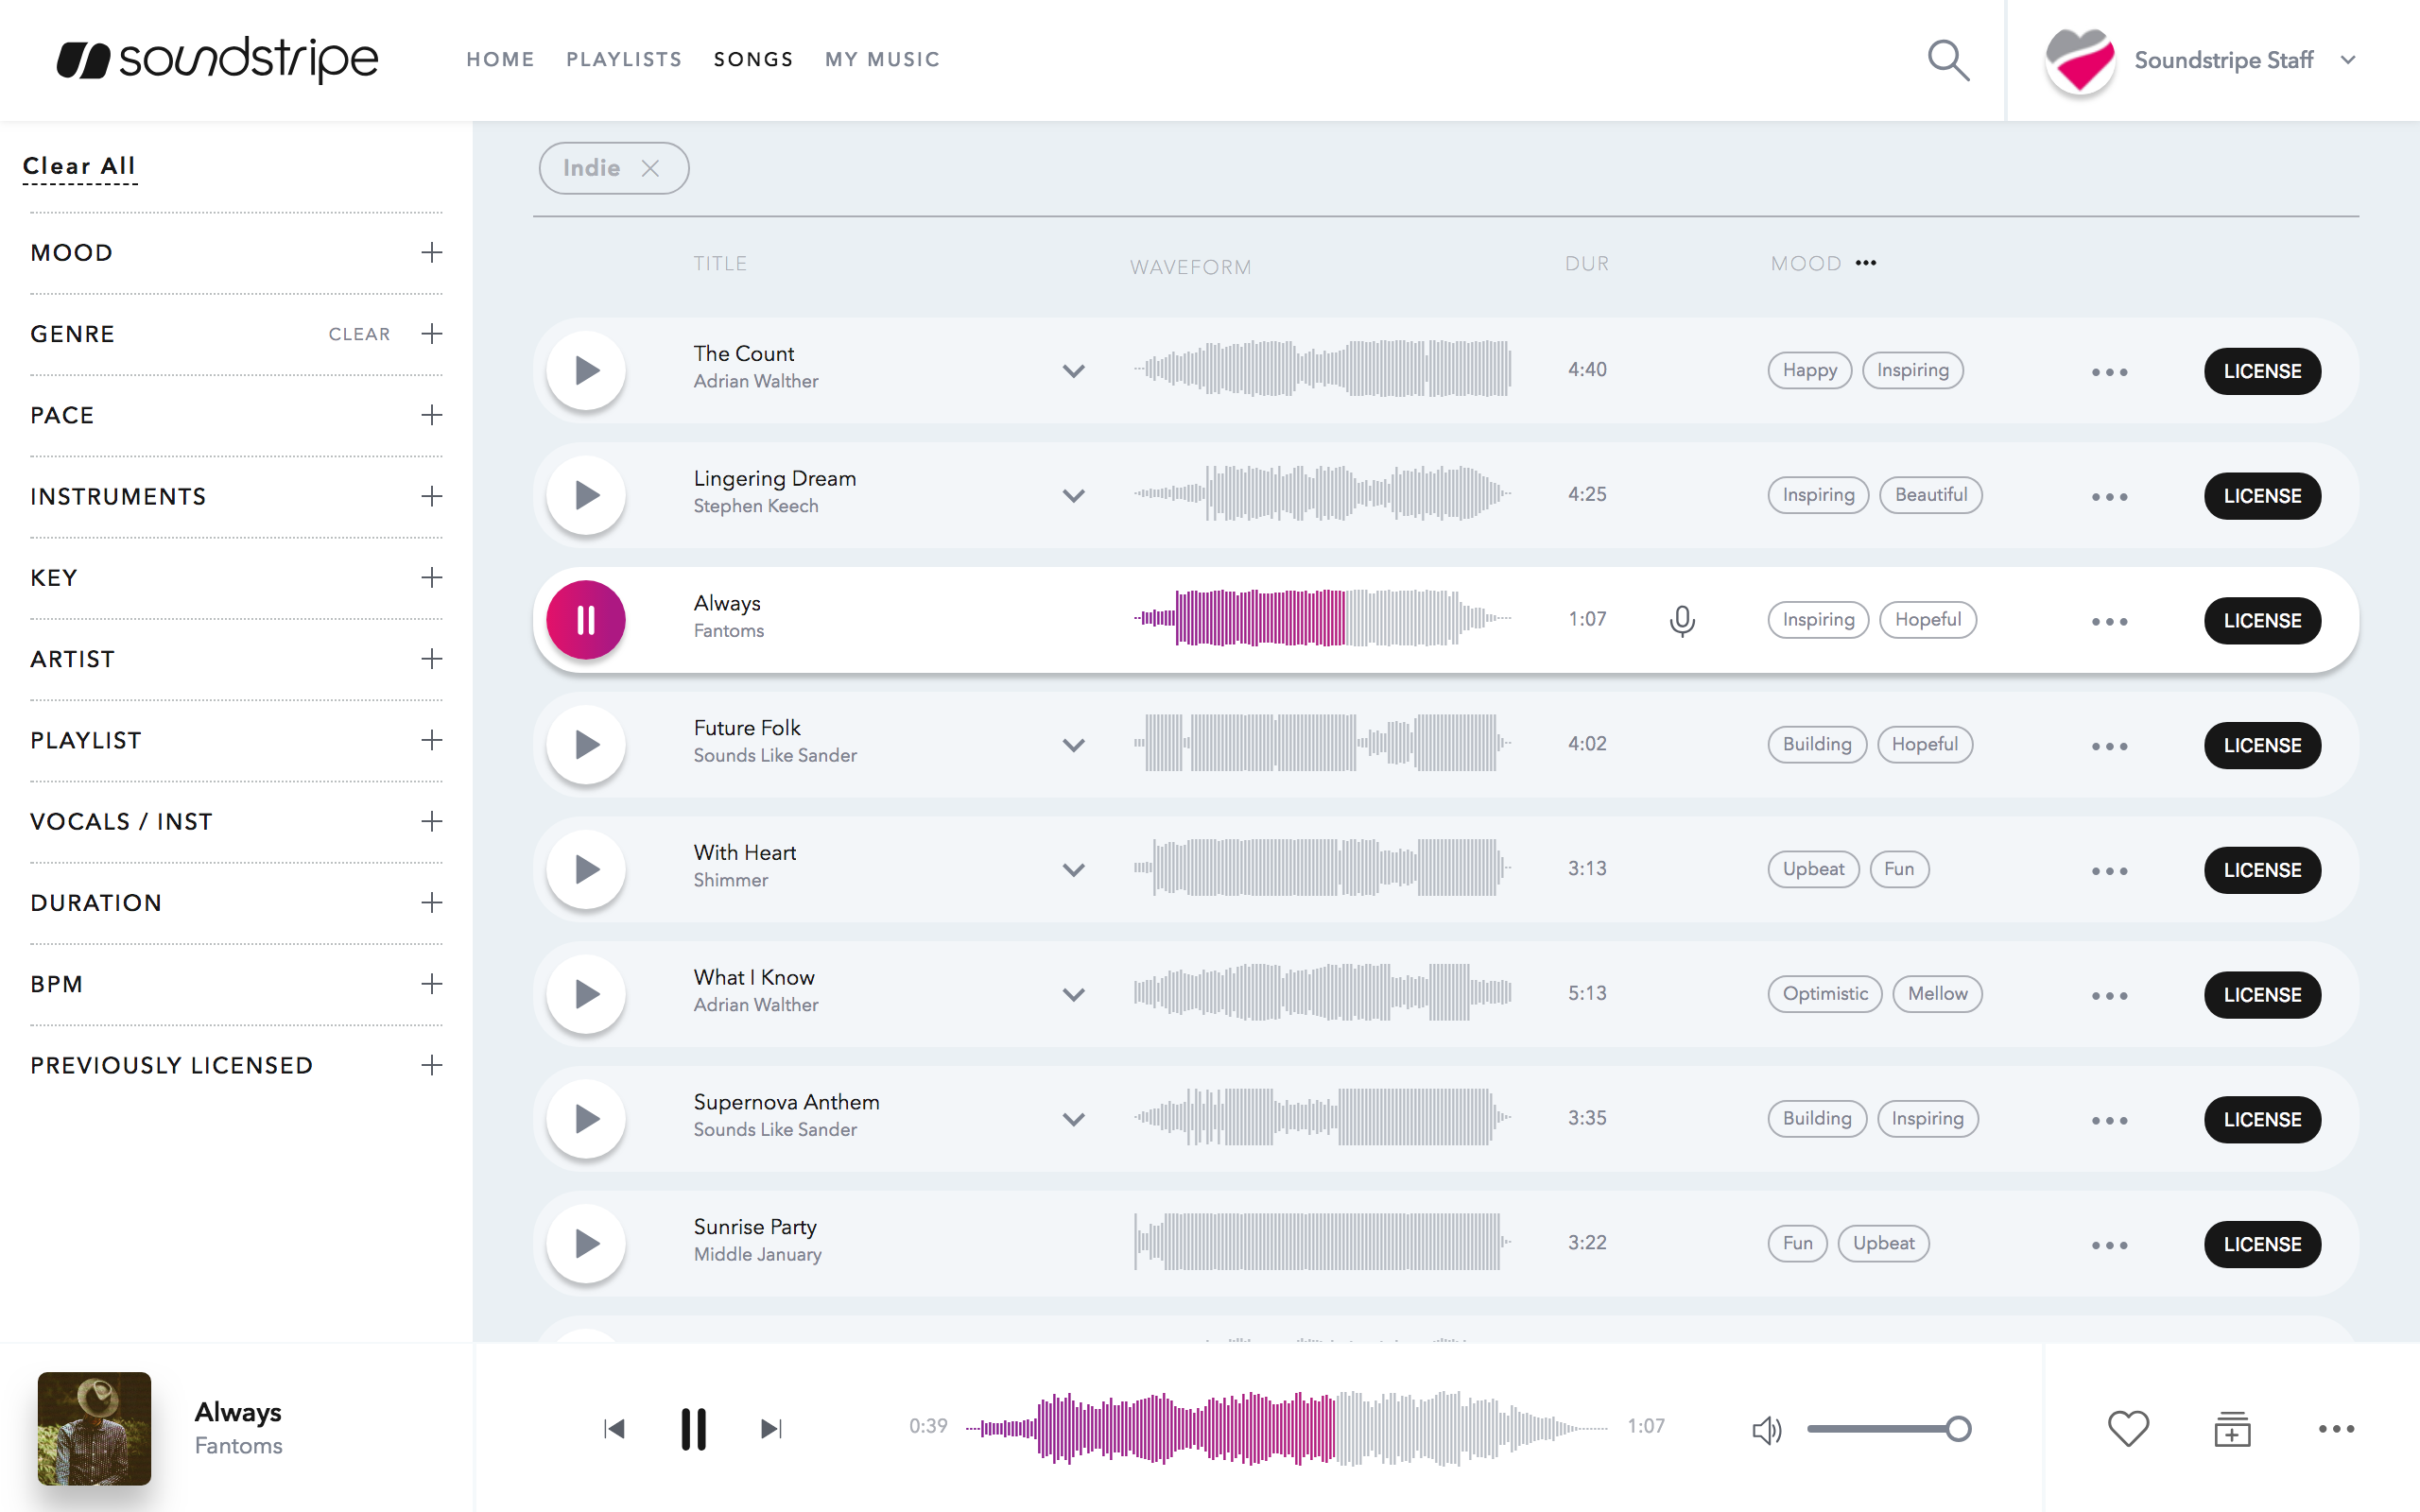 Image of Soundstripe Song Search and Filter